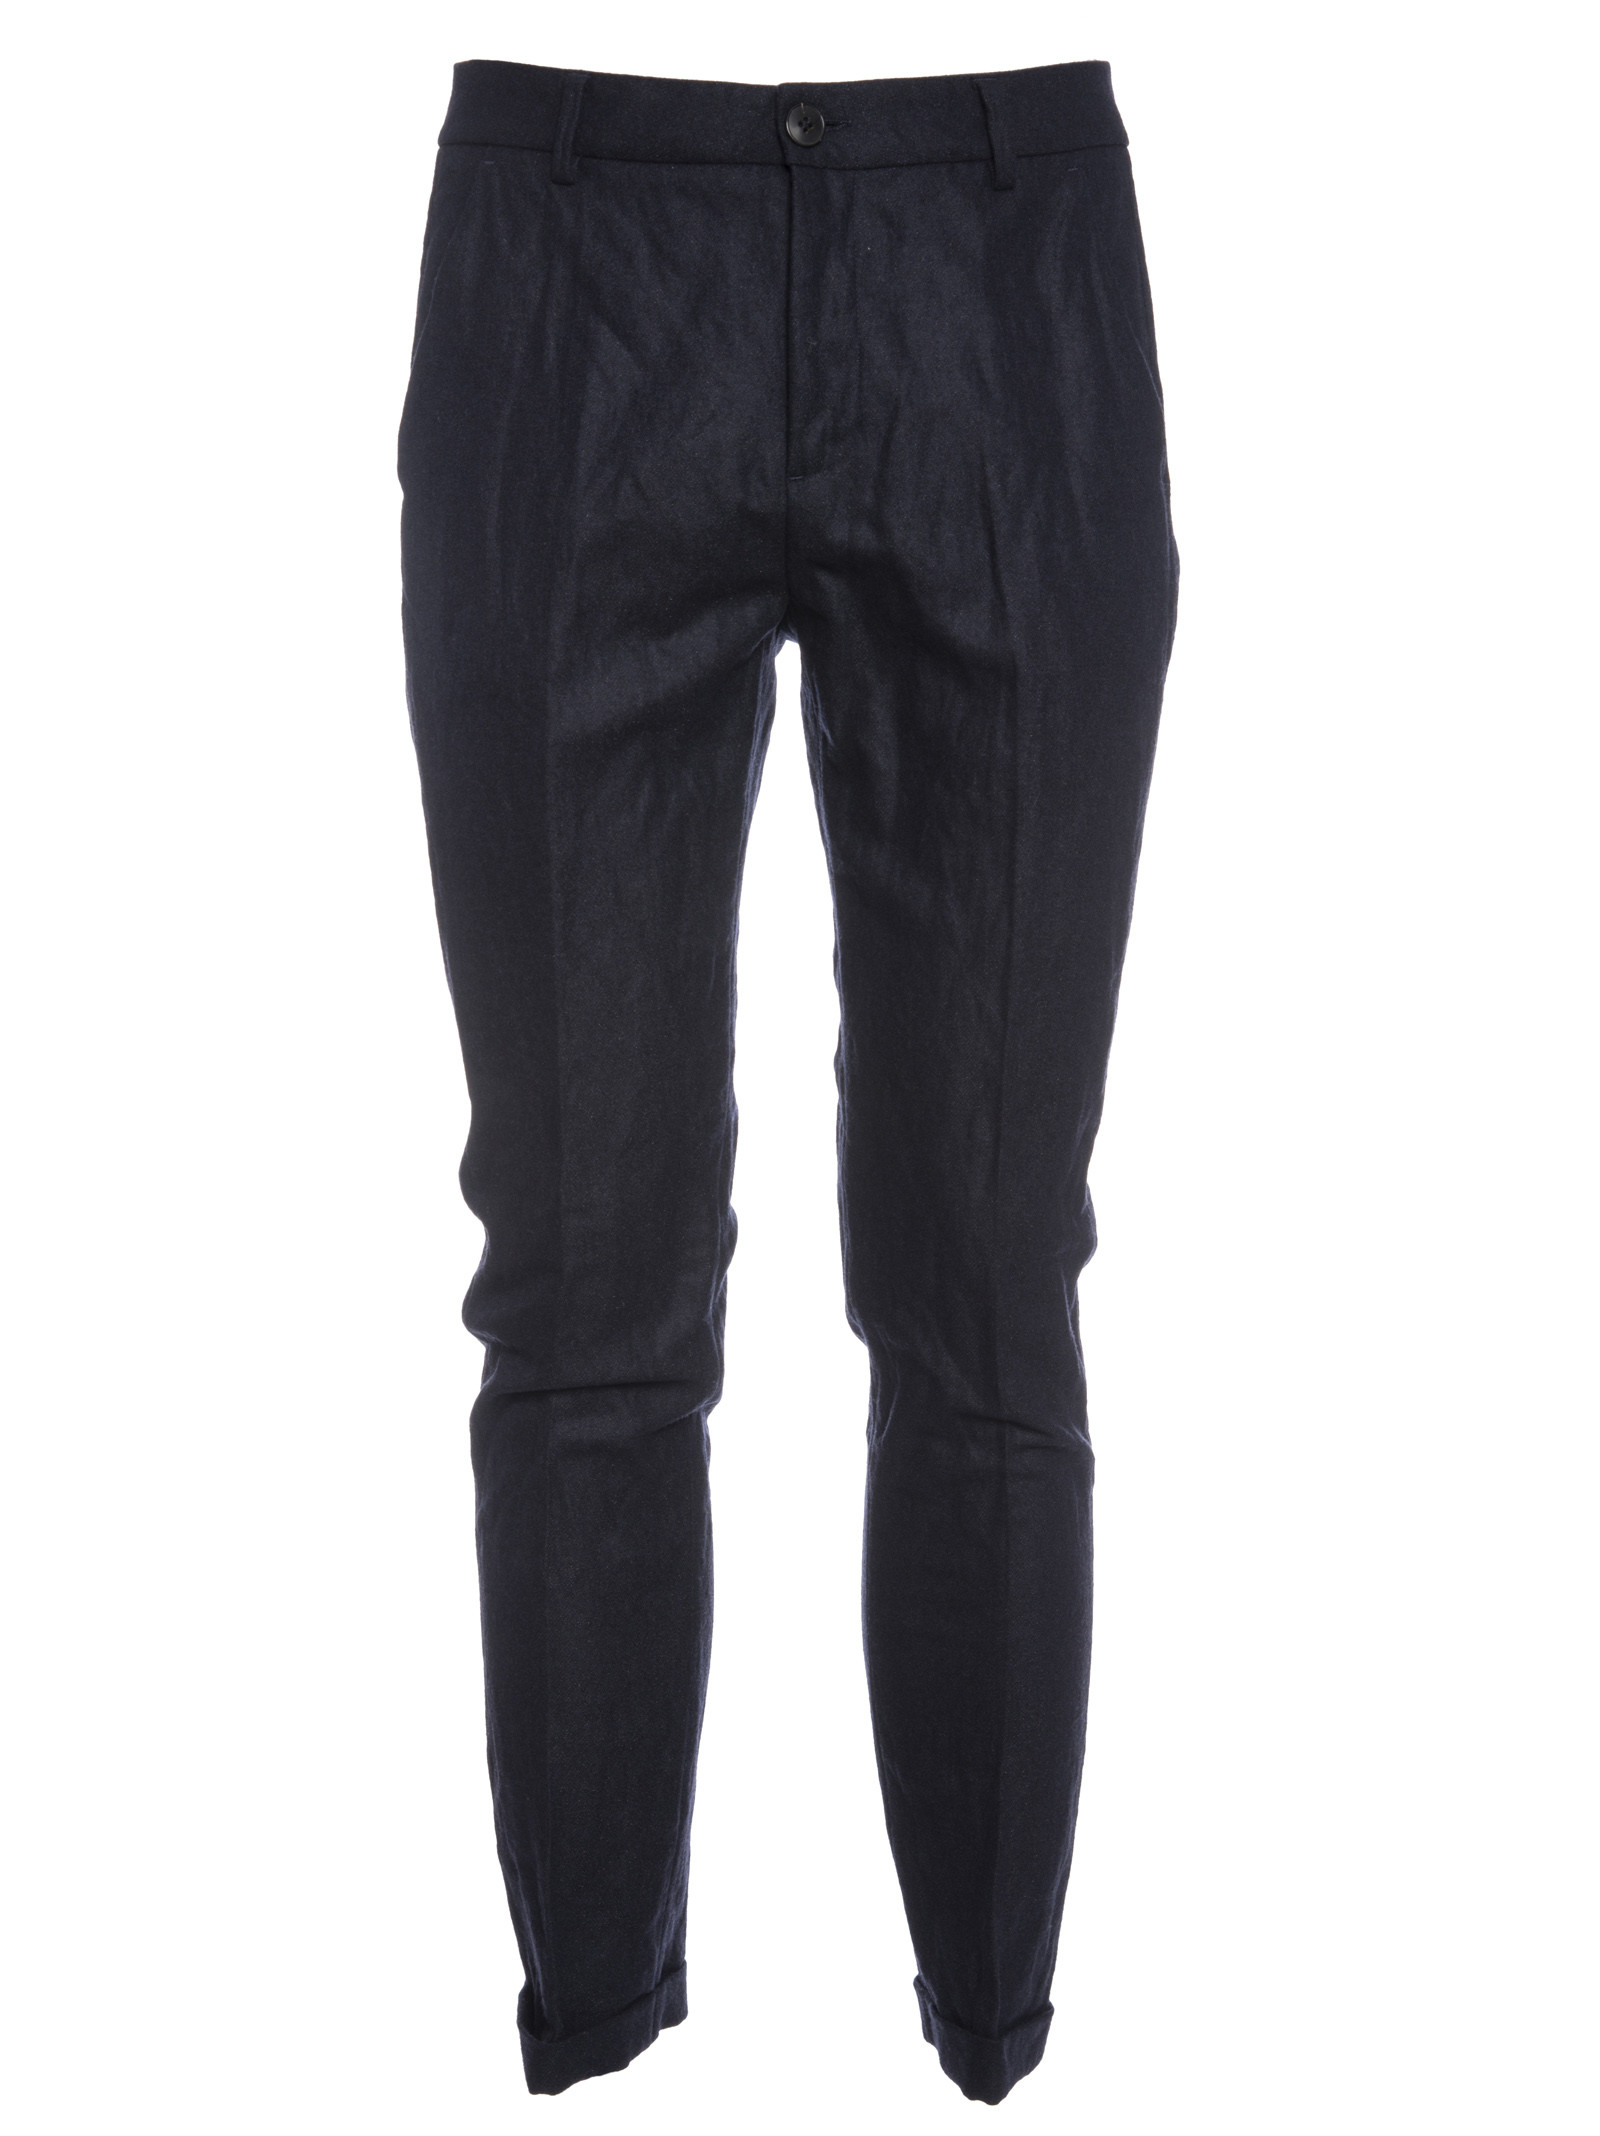 Aglini New Edgard Trousers